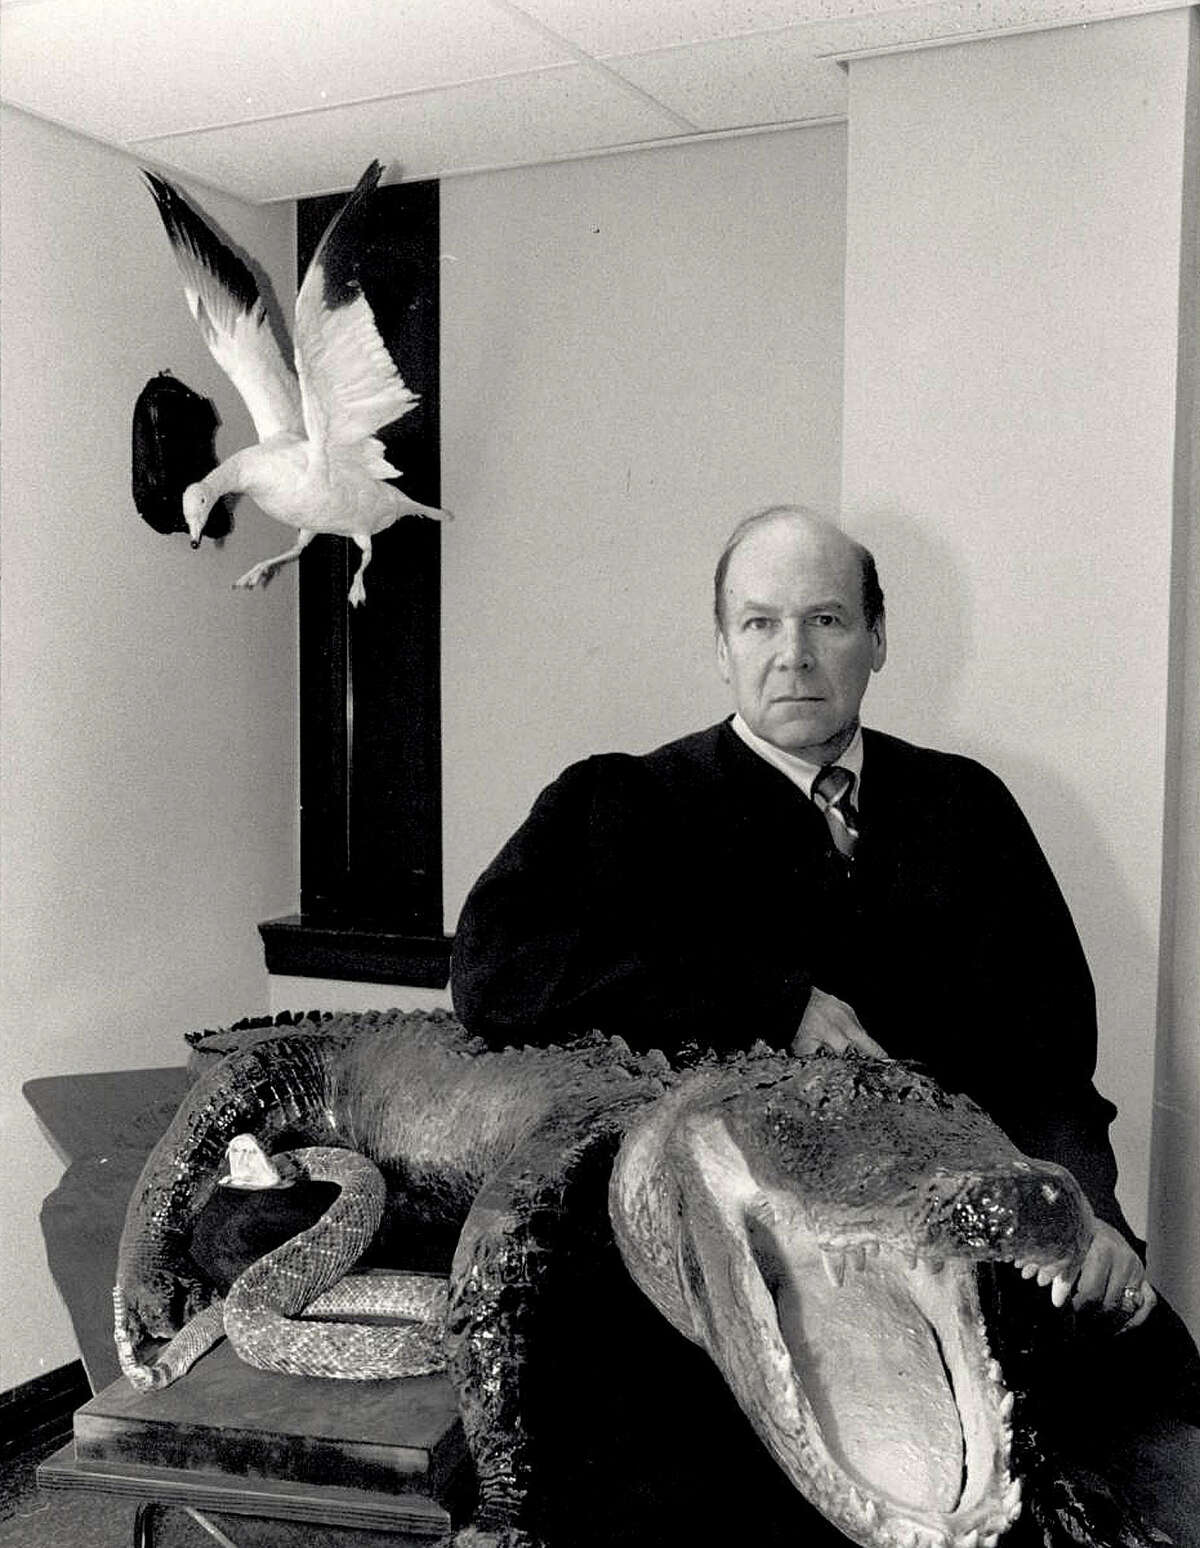 Judge Al Gerson with some of the hunting trophies that gave his chambers flair soon after being appointed to County Court at Law No. 1 in Jefferson County. Gerson announced his retirement after 27 years on the bench. Enterprise file photo